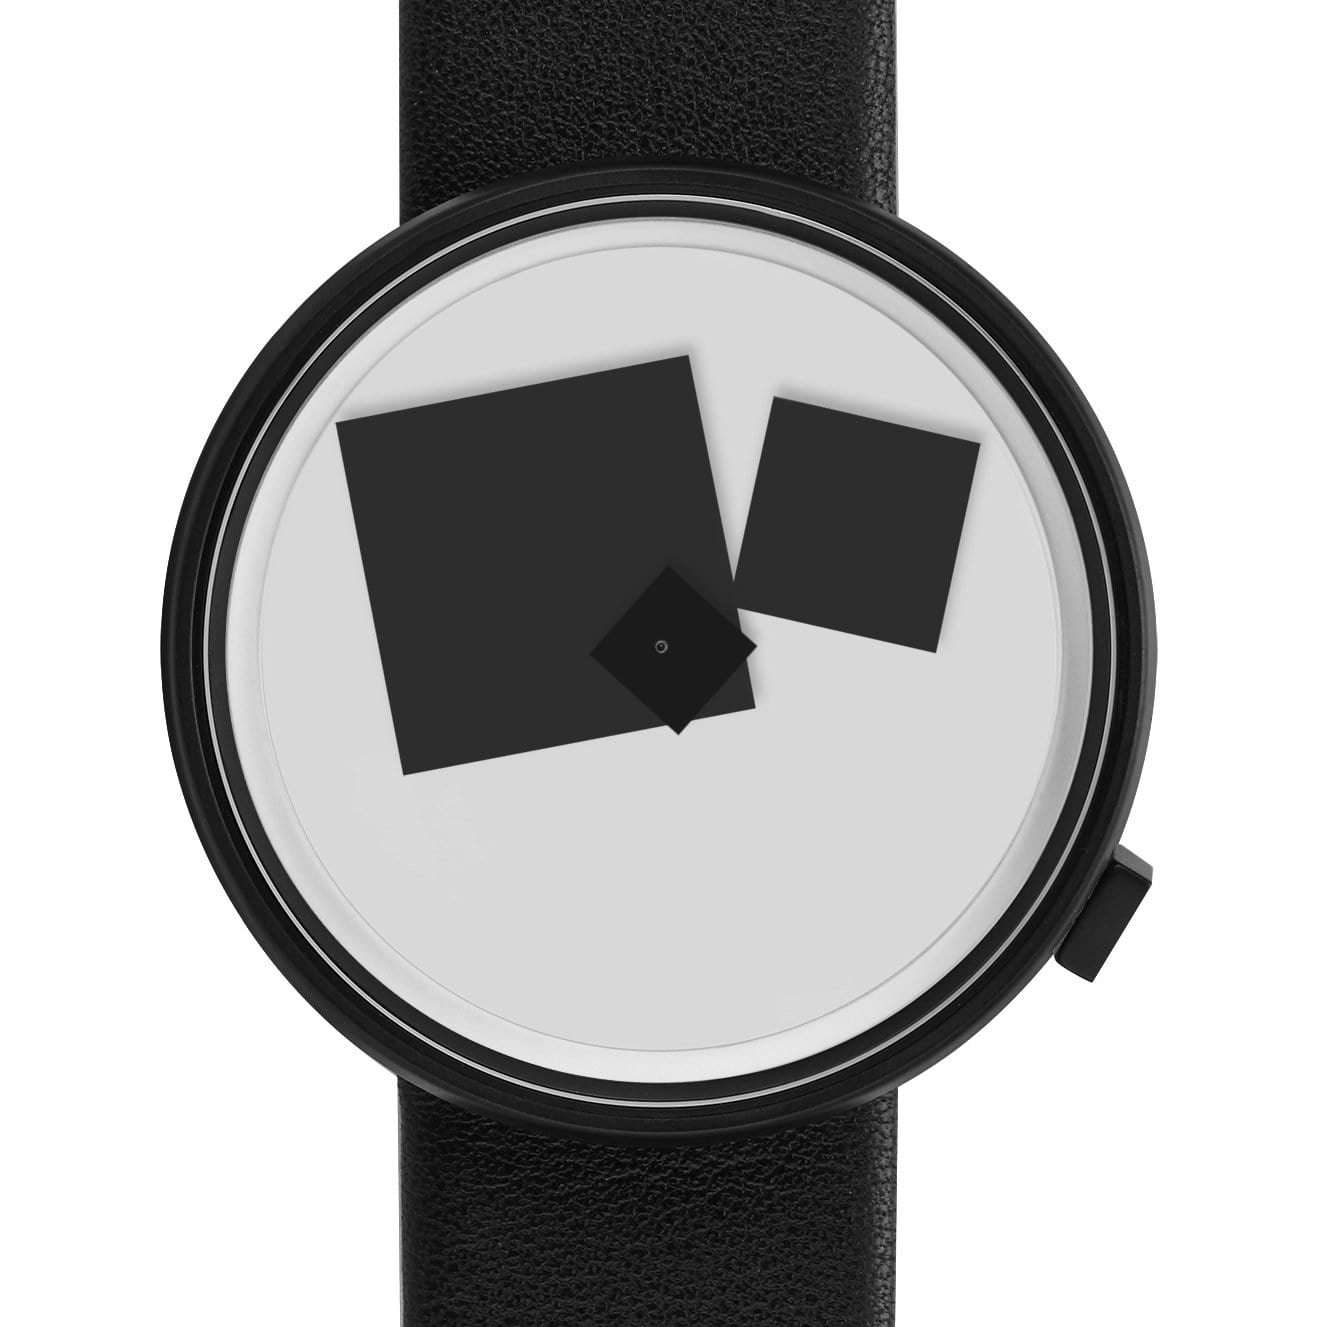 Projects Watches Watches Bauhaus Century Black Watch